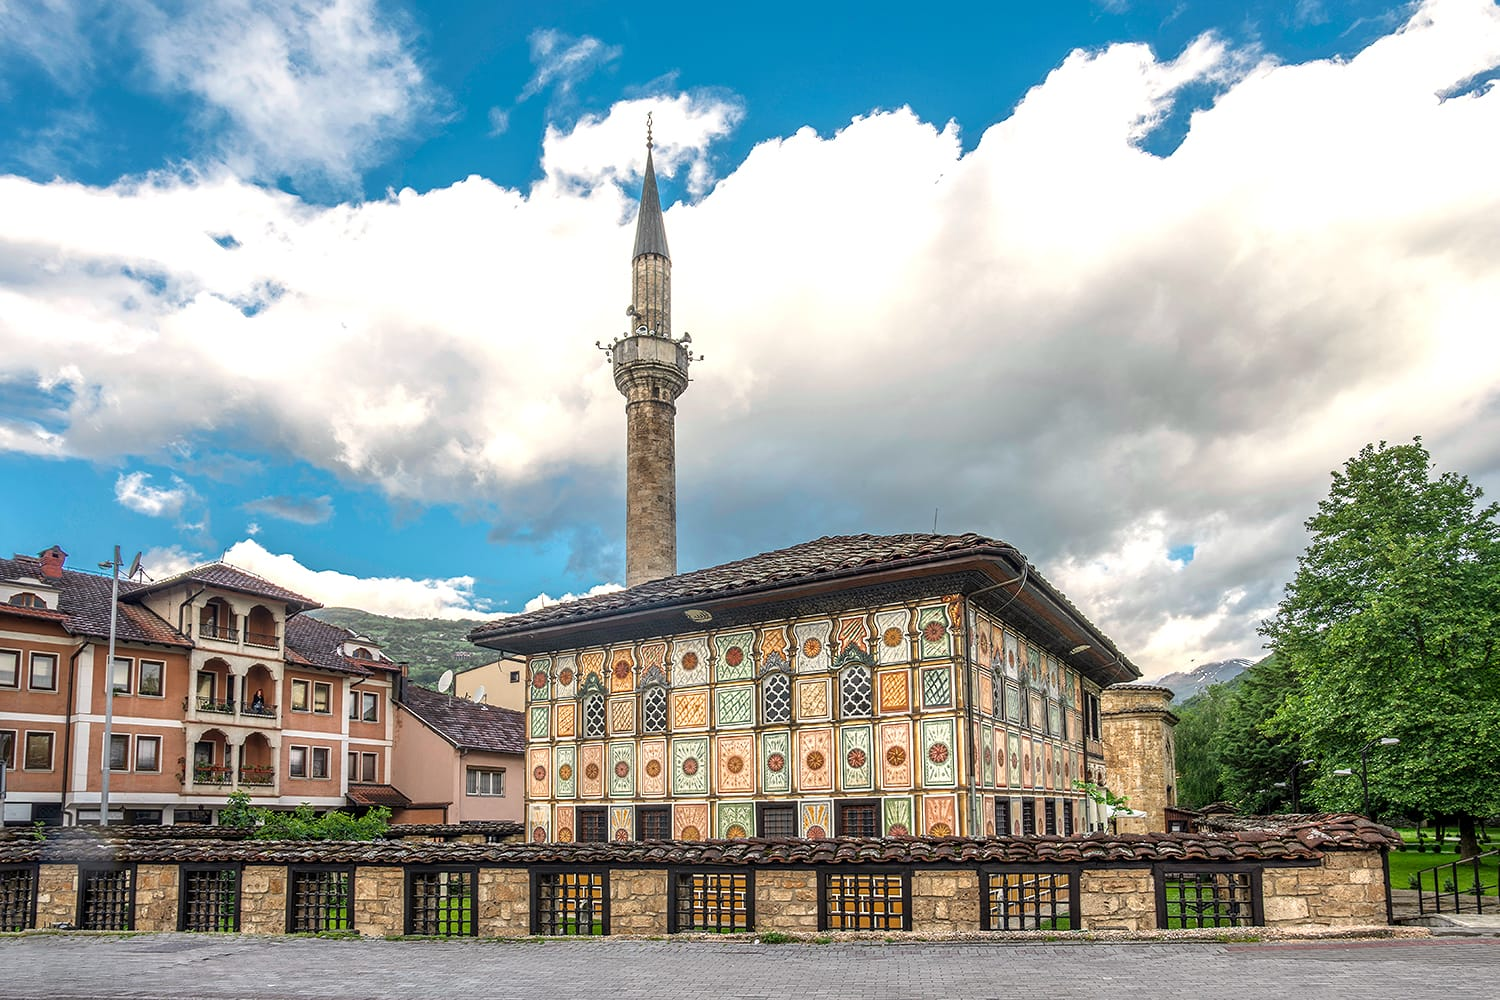 Tetovo painted mosque in Skopje, Macedonia